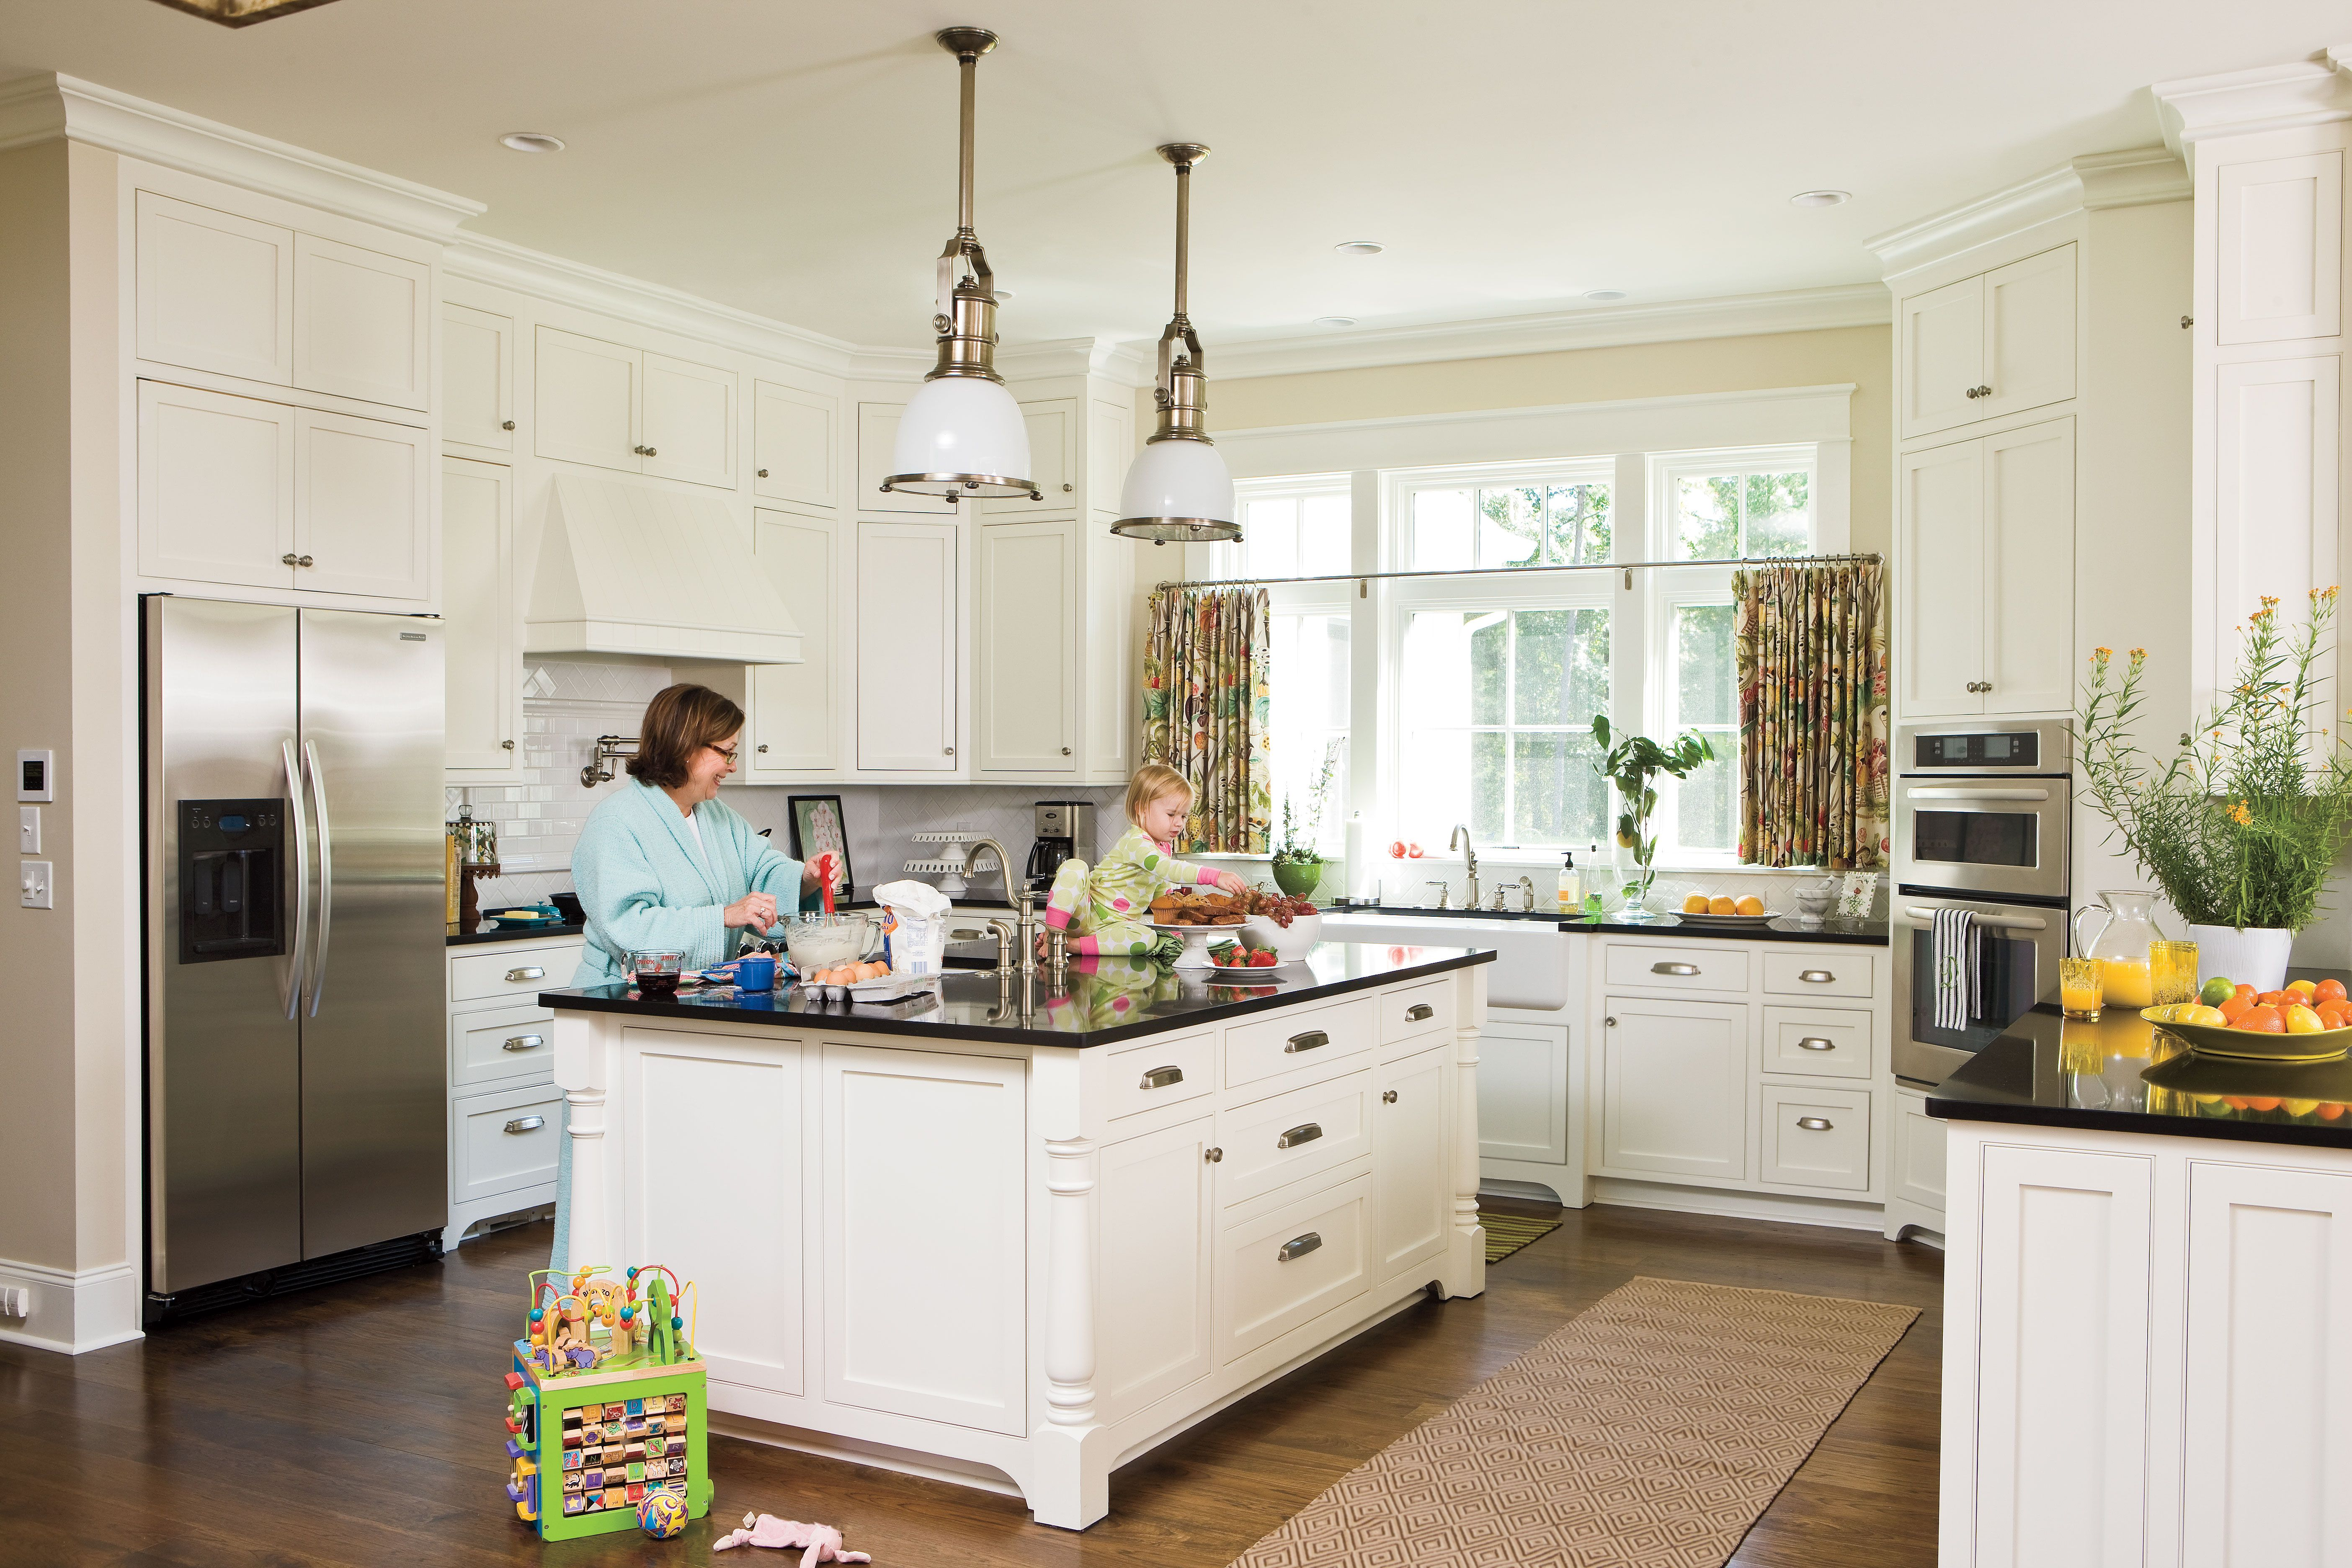 Ideas for Southern Homes: Kitchen Cabinet Details | kitchens ...